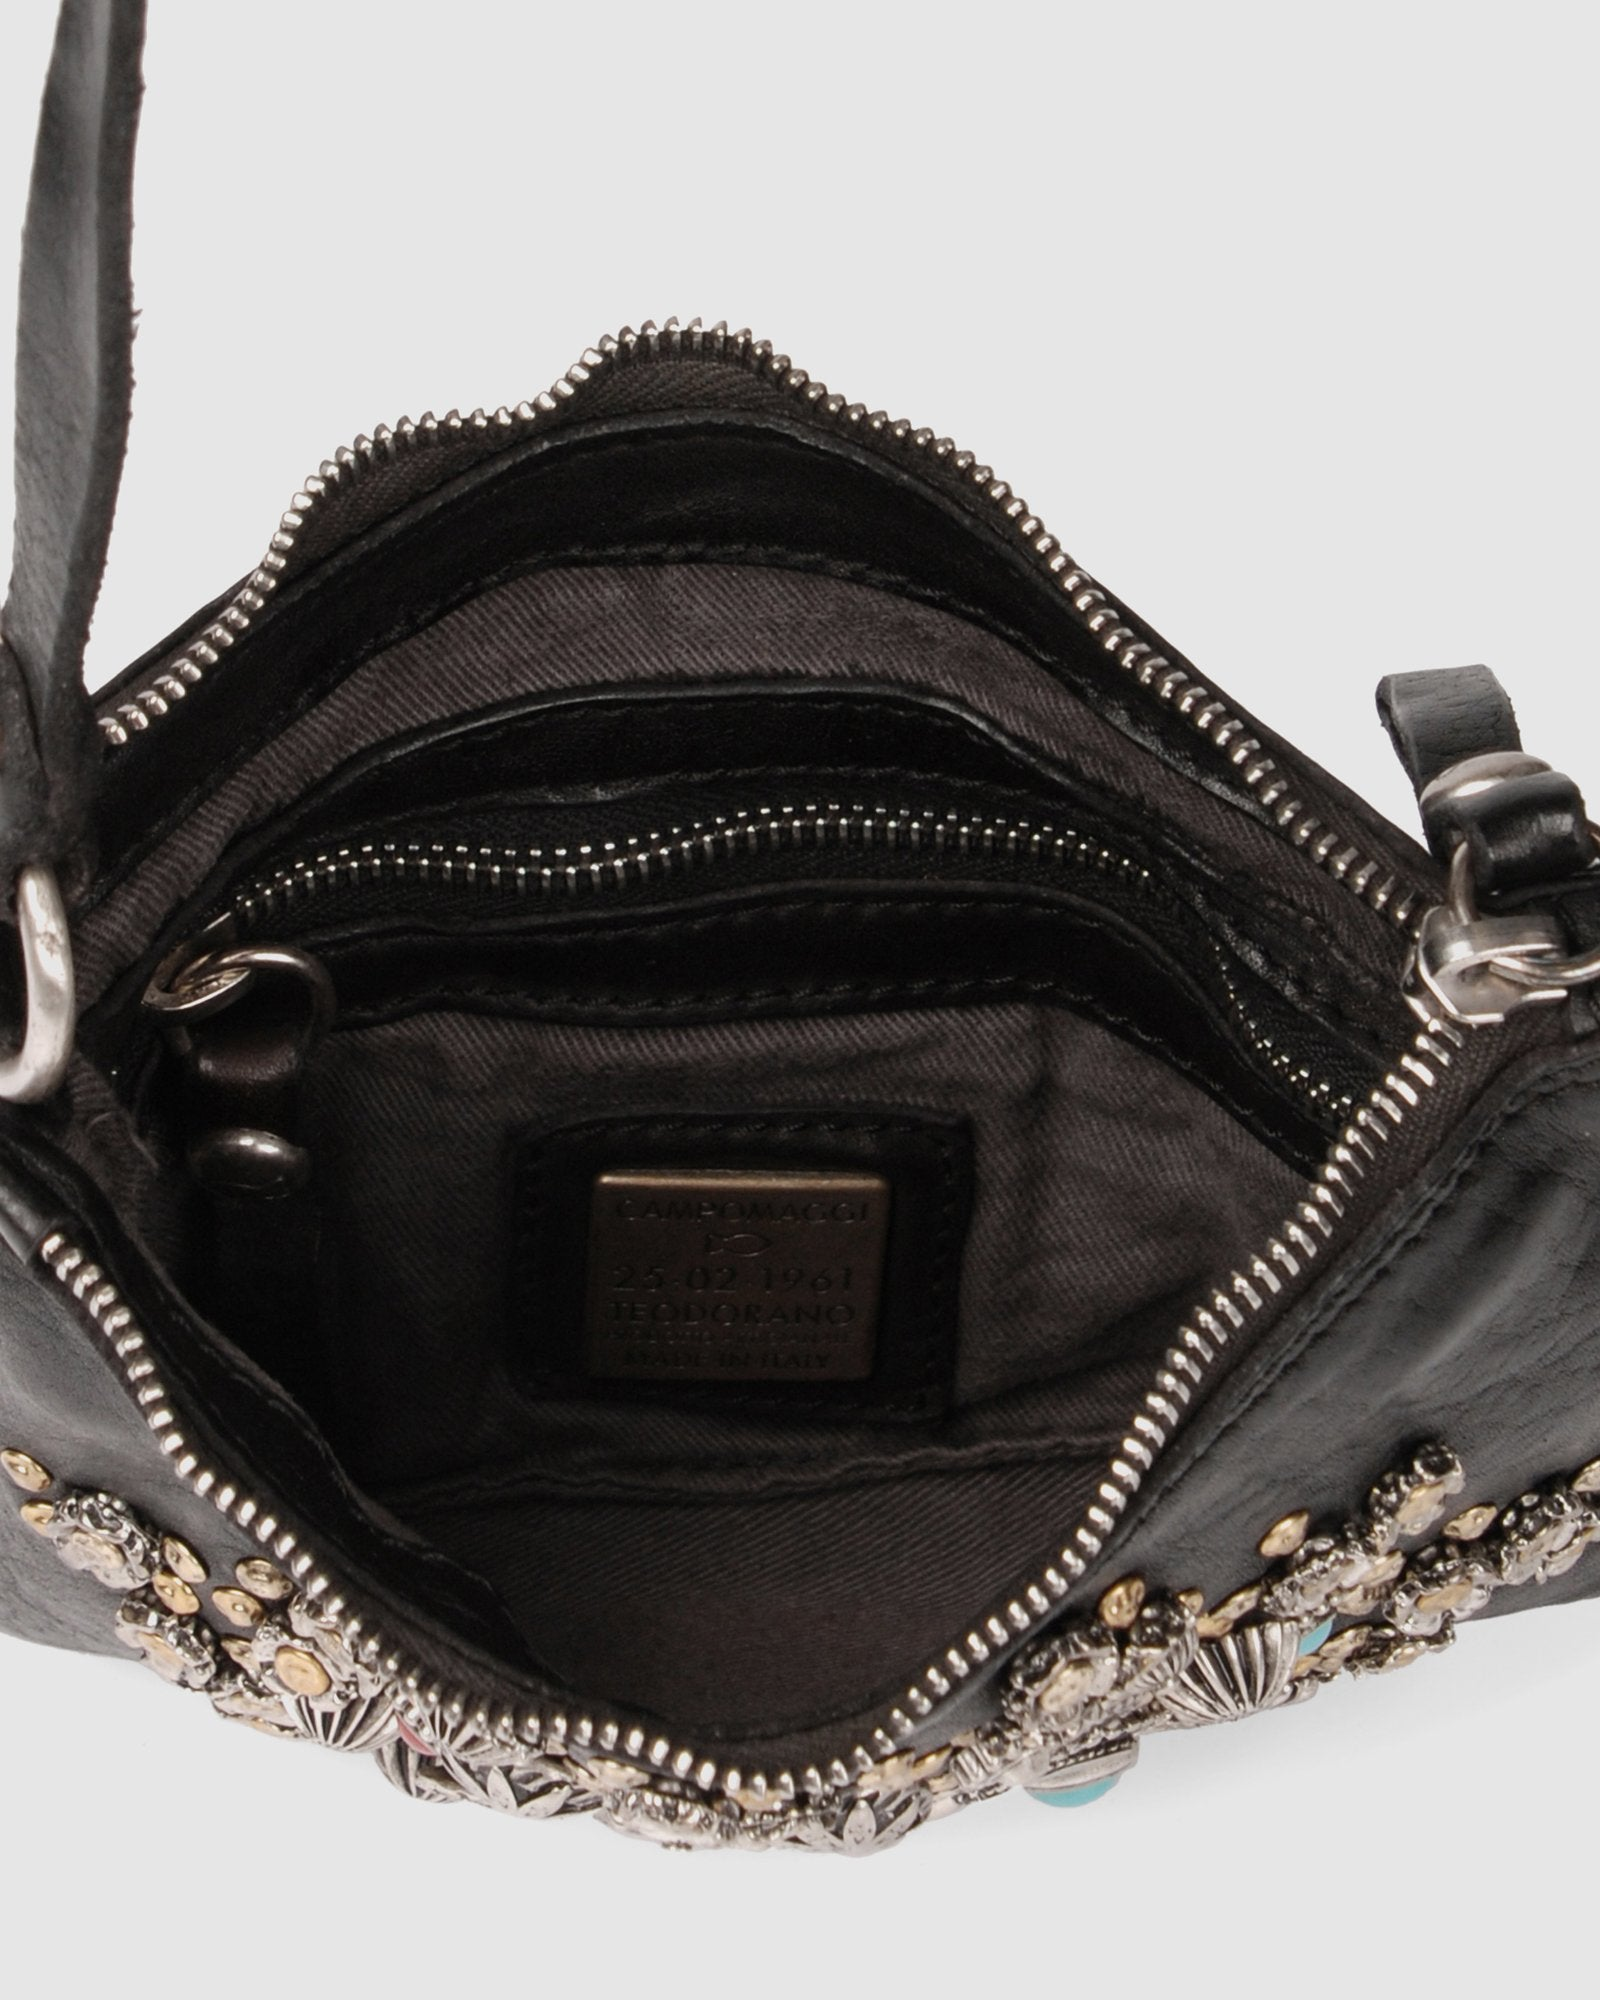 CAMPOMAGGI ROSETTE CROSS BODY BAG BLACK LEATHER